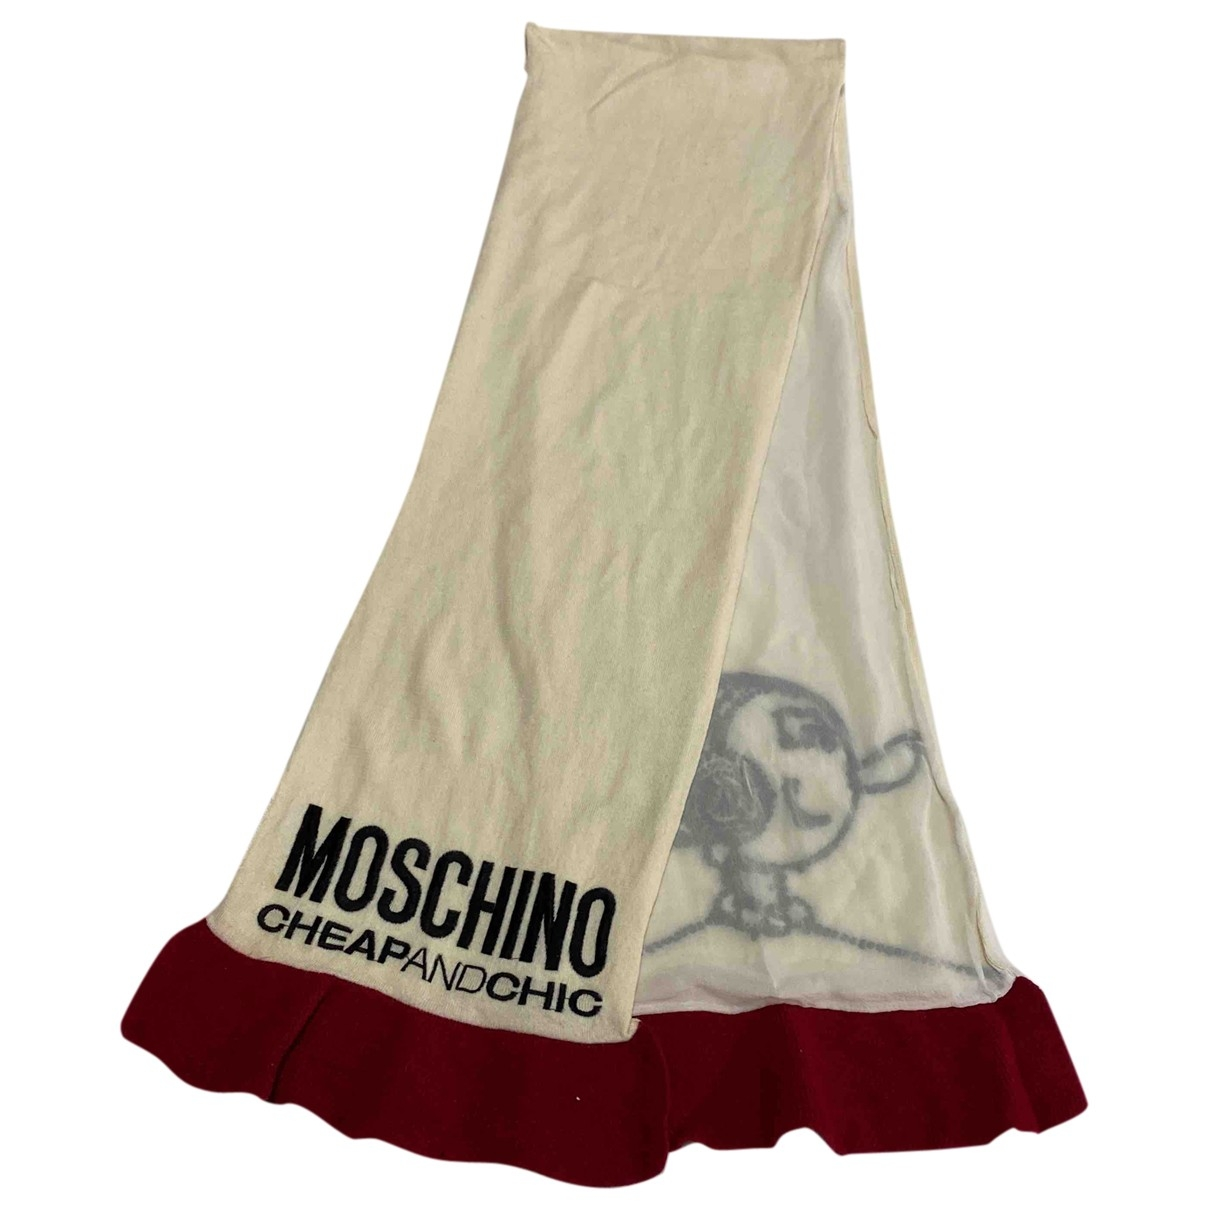 Moschino Cheap And Chic - Foulard   pour femme en laine